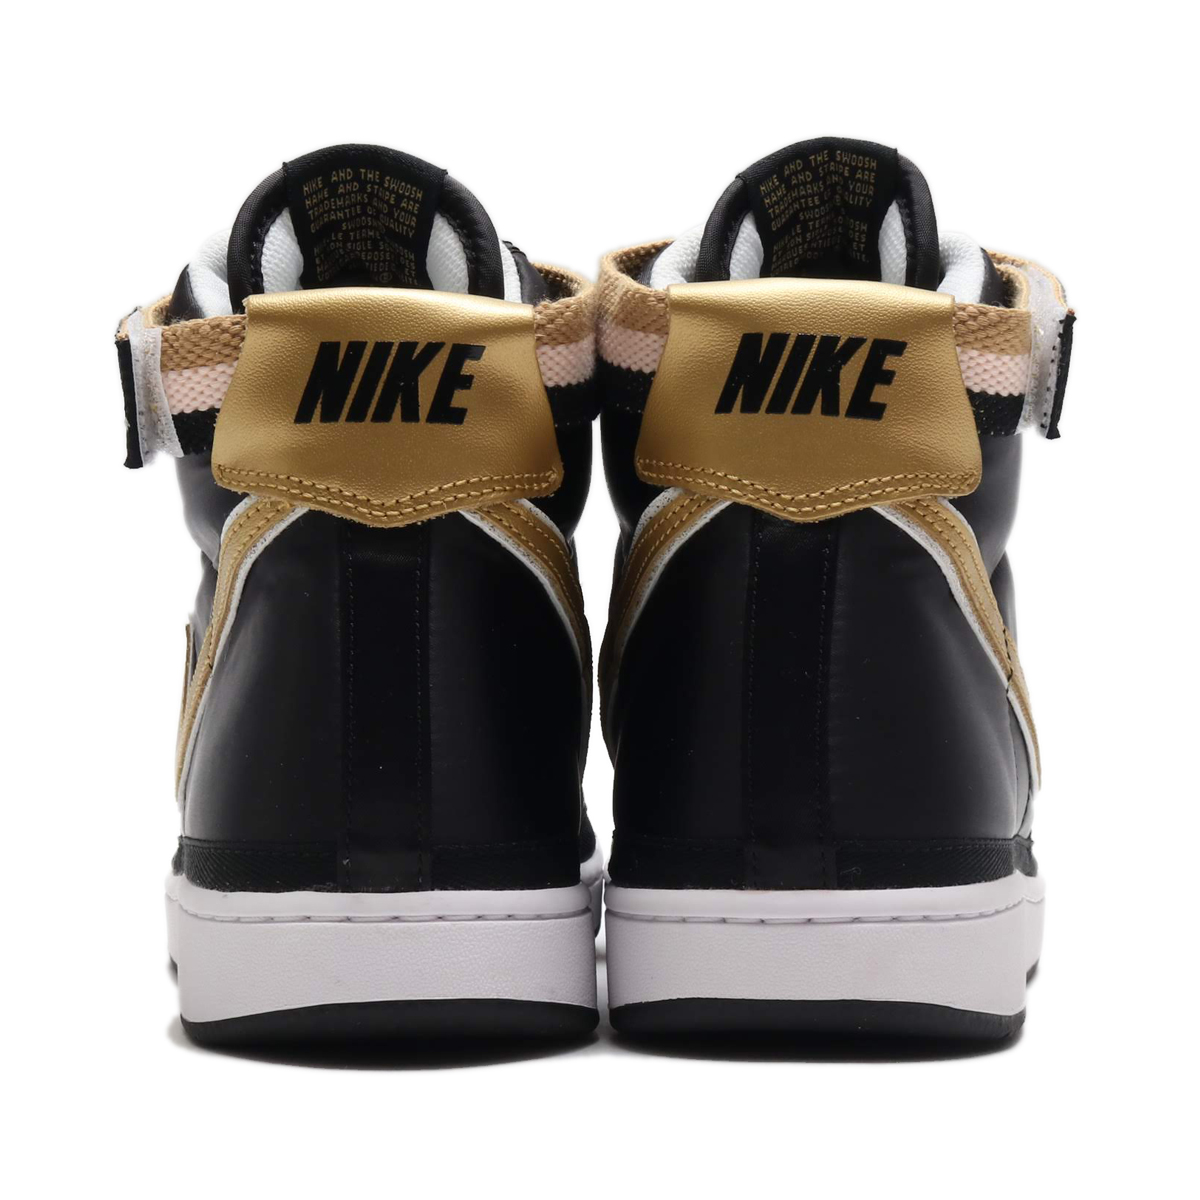 17d8f34fa49 NIKE VANDAL HIGH SUPREME QS (ナイキバンダルハイサプリーム QS) (BLACK METALLIC  GOLD-WHITE)18FA-S